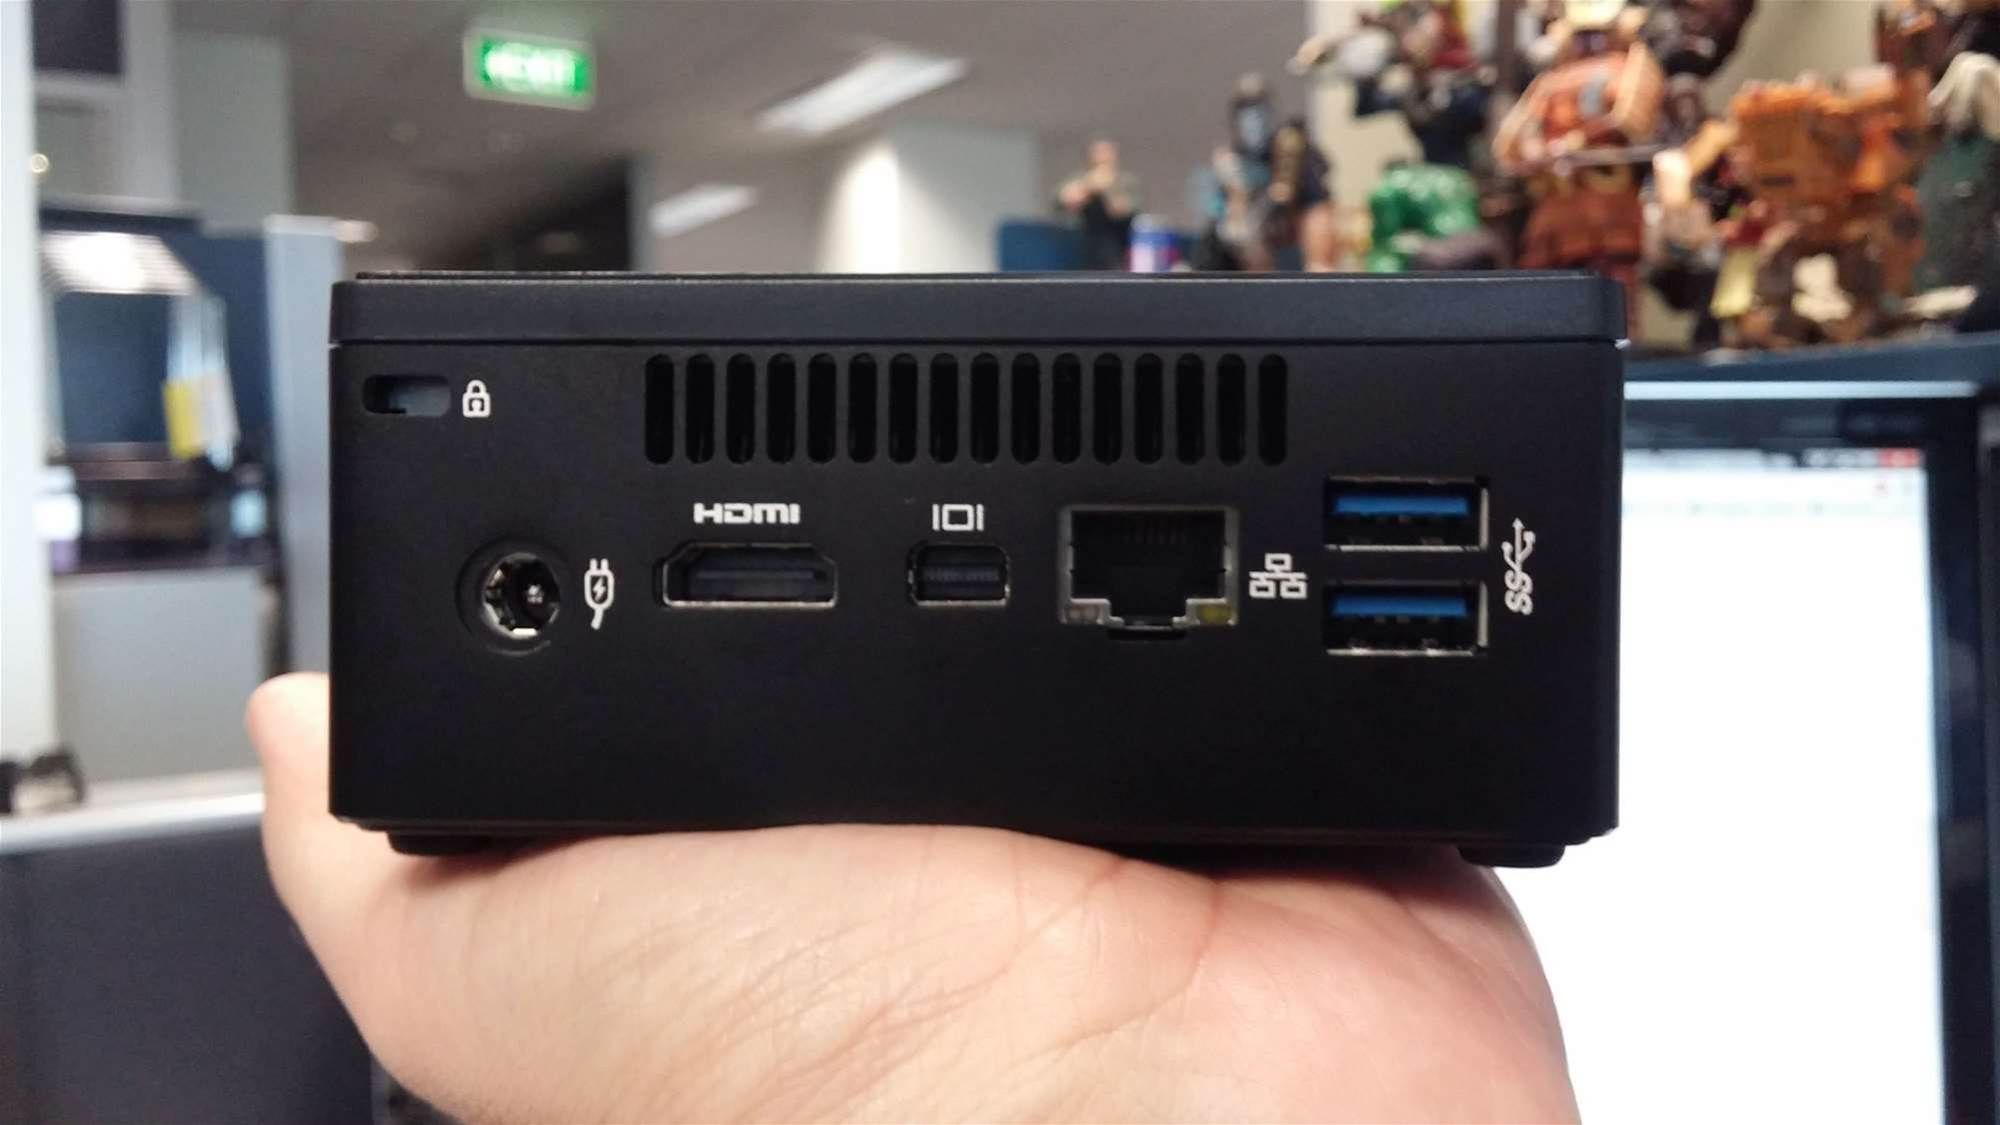 GIGABYTE's new Brix S is a super-powered NUC-alike